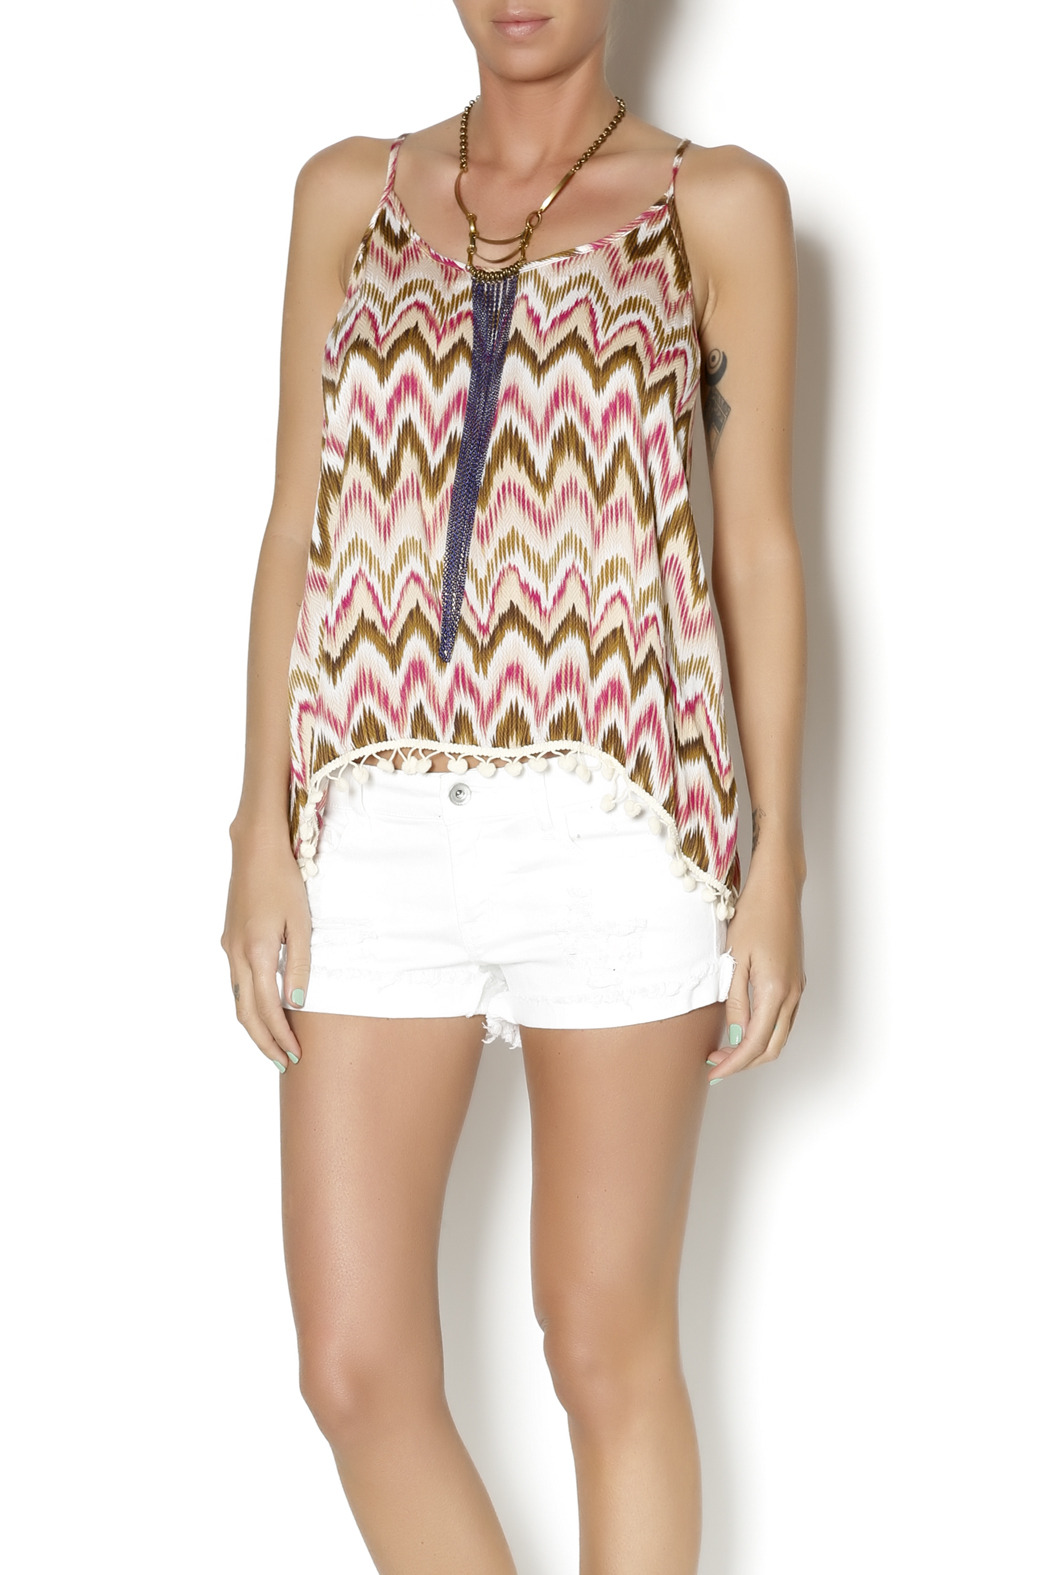 Abby & Taylor Blue Gold Fringe Necklace - Front Full Image